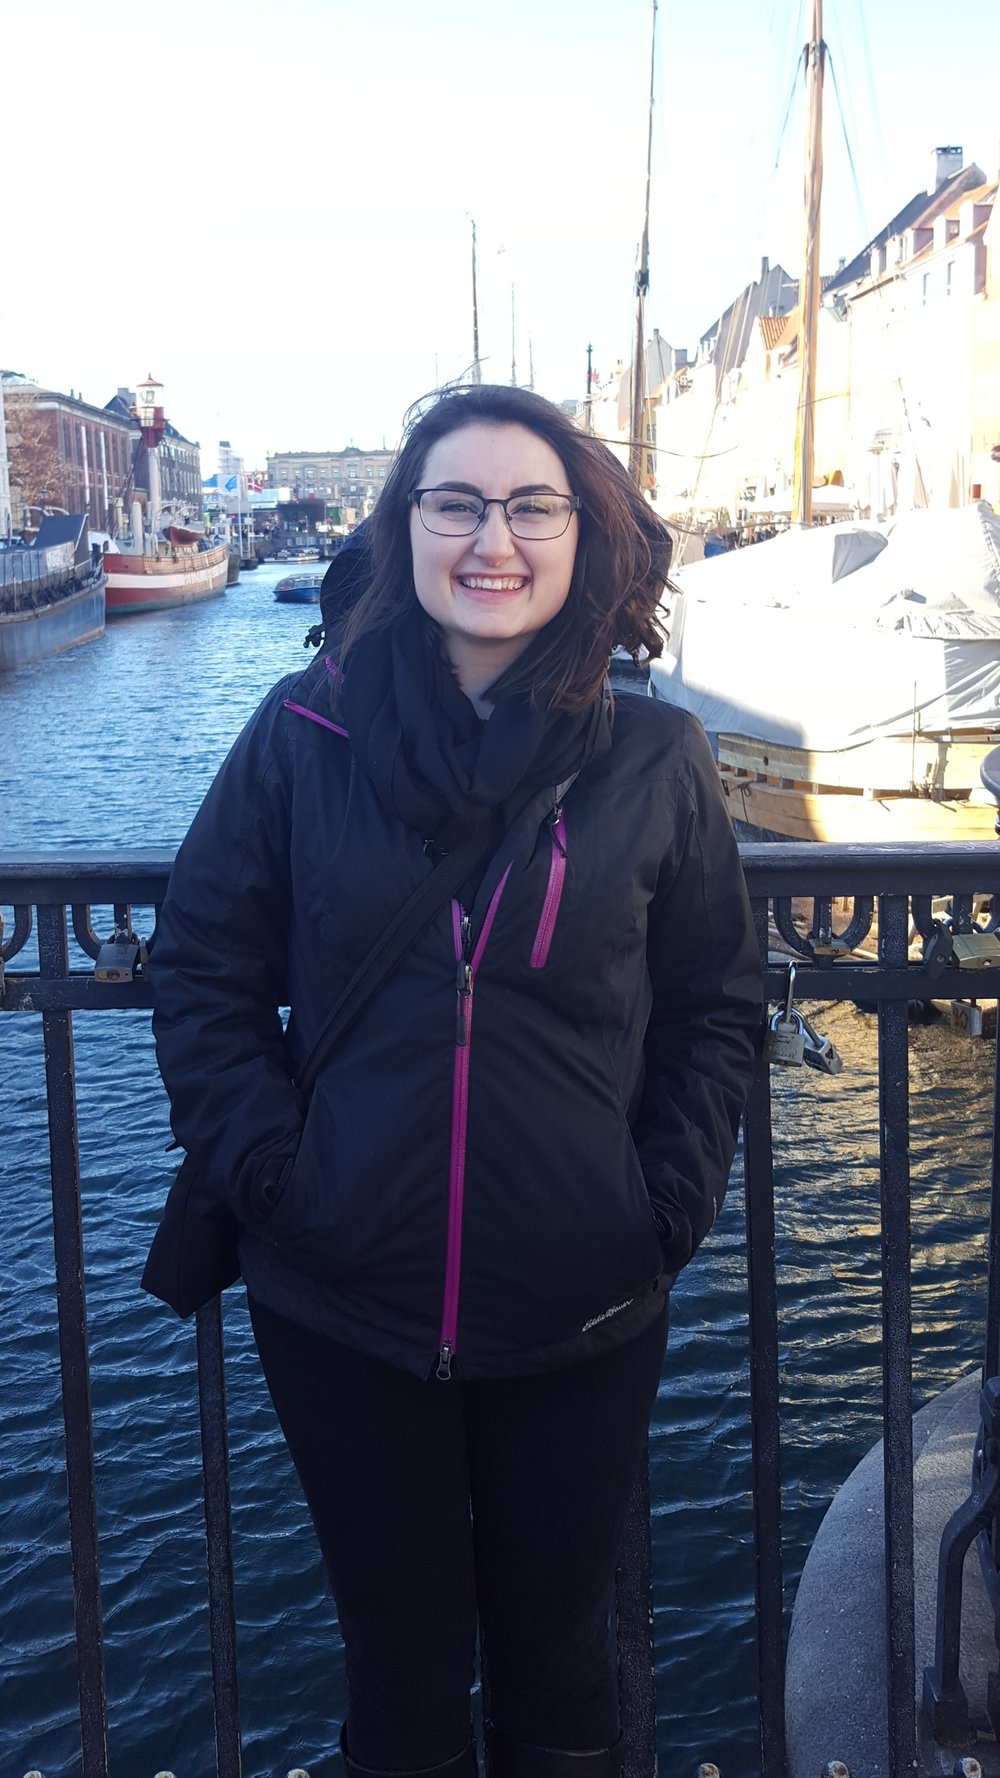 This was me in March 2017, in Nyhavn, Copenhagen, Denmark. I was extremely sleep-deprived, but definitely enjoying the city!